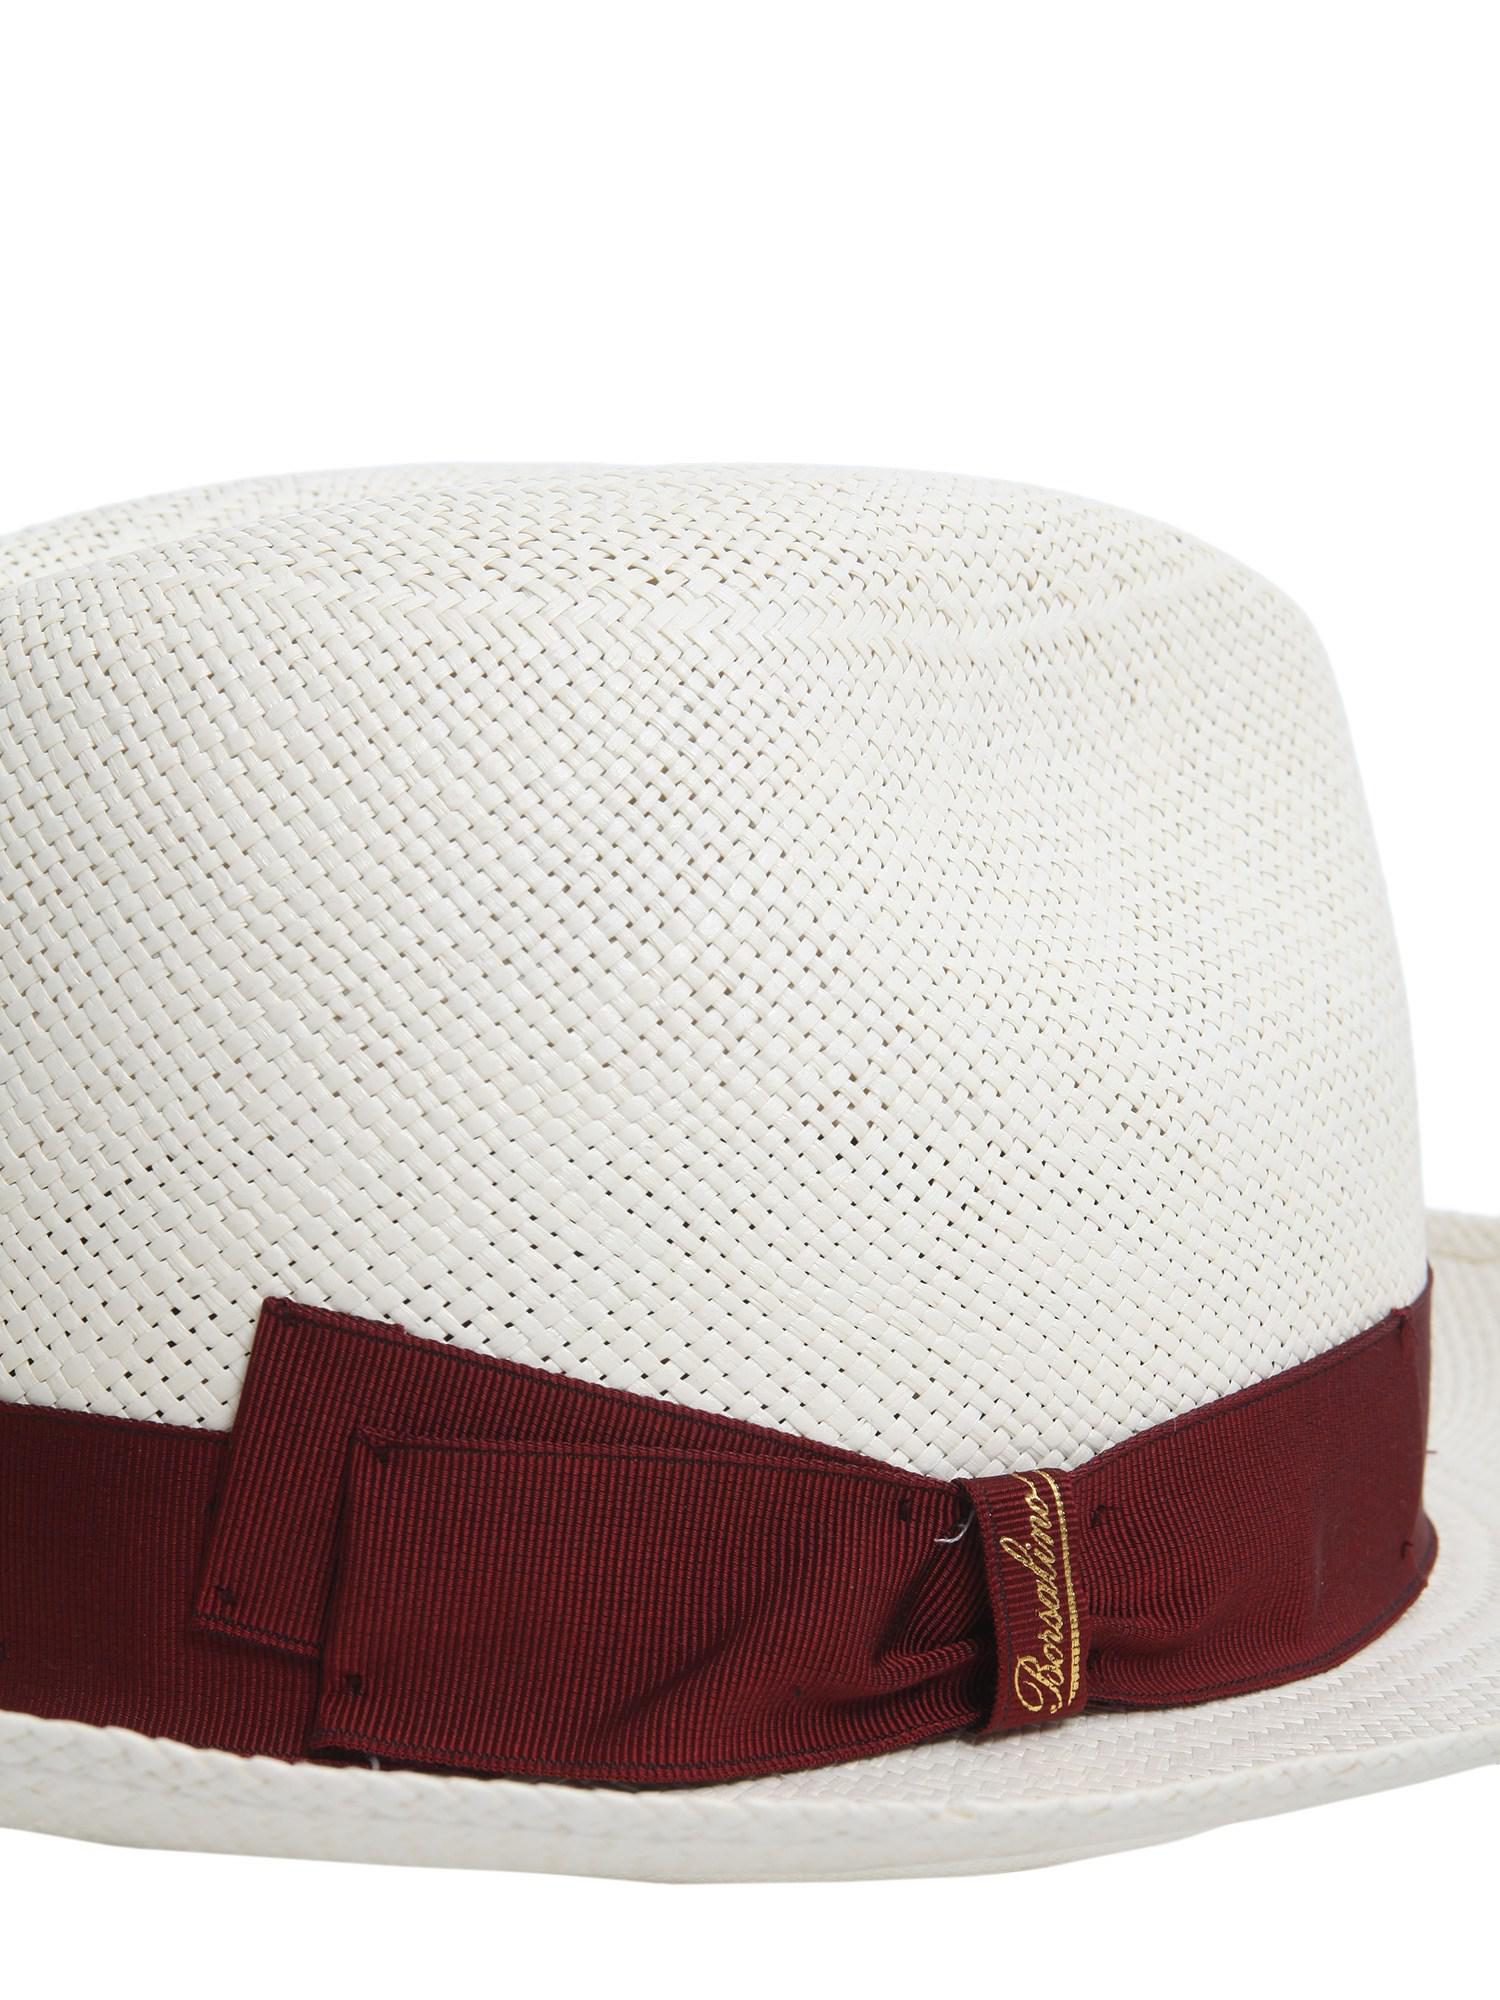 Borsalino - White Panama Quito Jaquard Tesa Media In Paglia - Lyst. View  fullscreen 7341068058fb